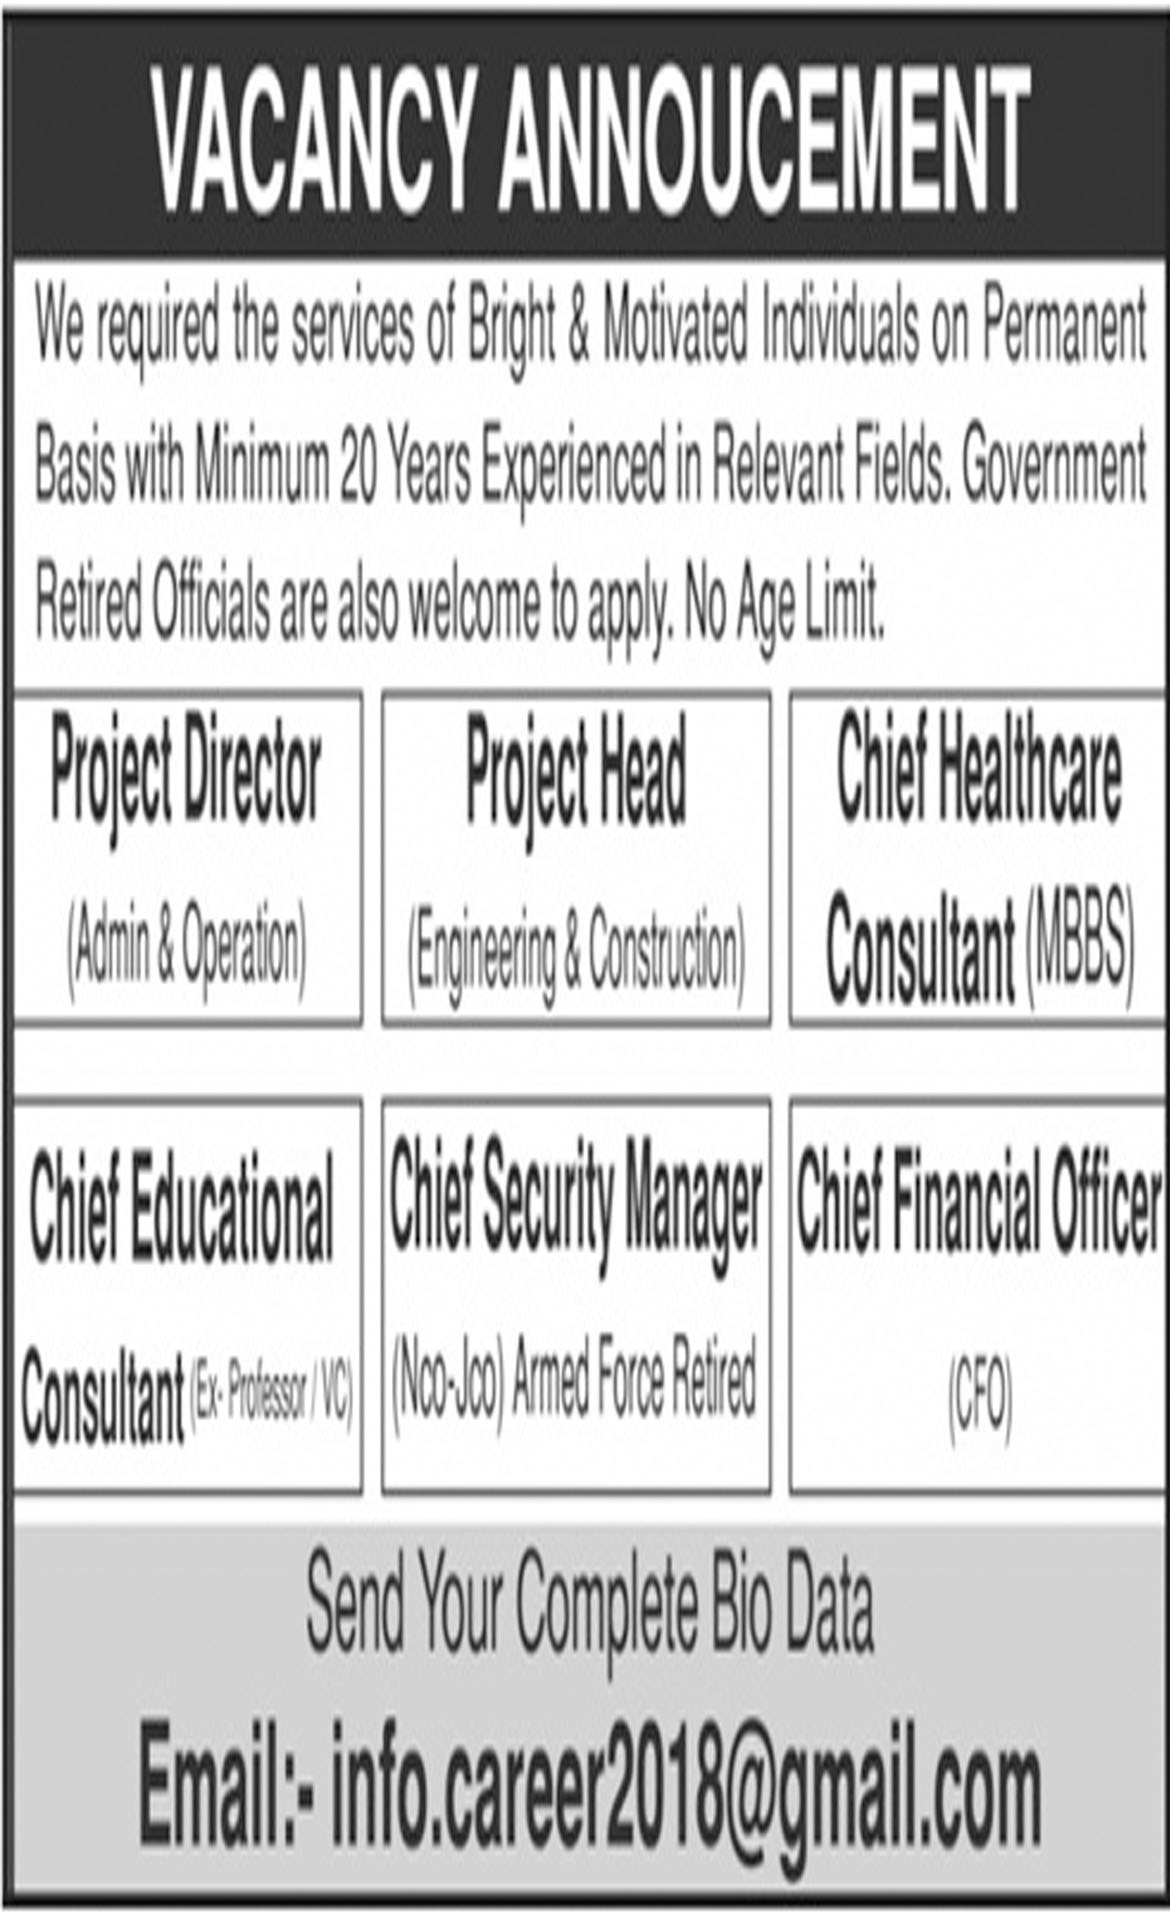 Jobs In Project Director, Project Head, Chief Security Manager, Chief Financial Officer 03 Oct  2018